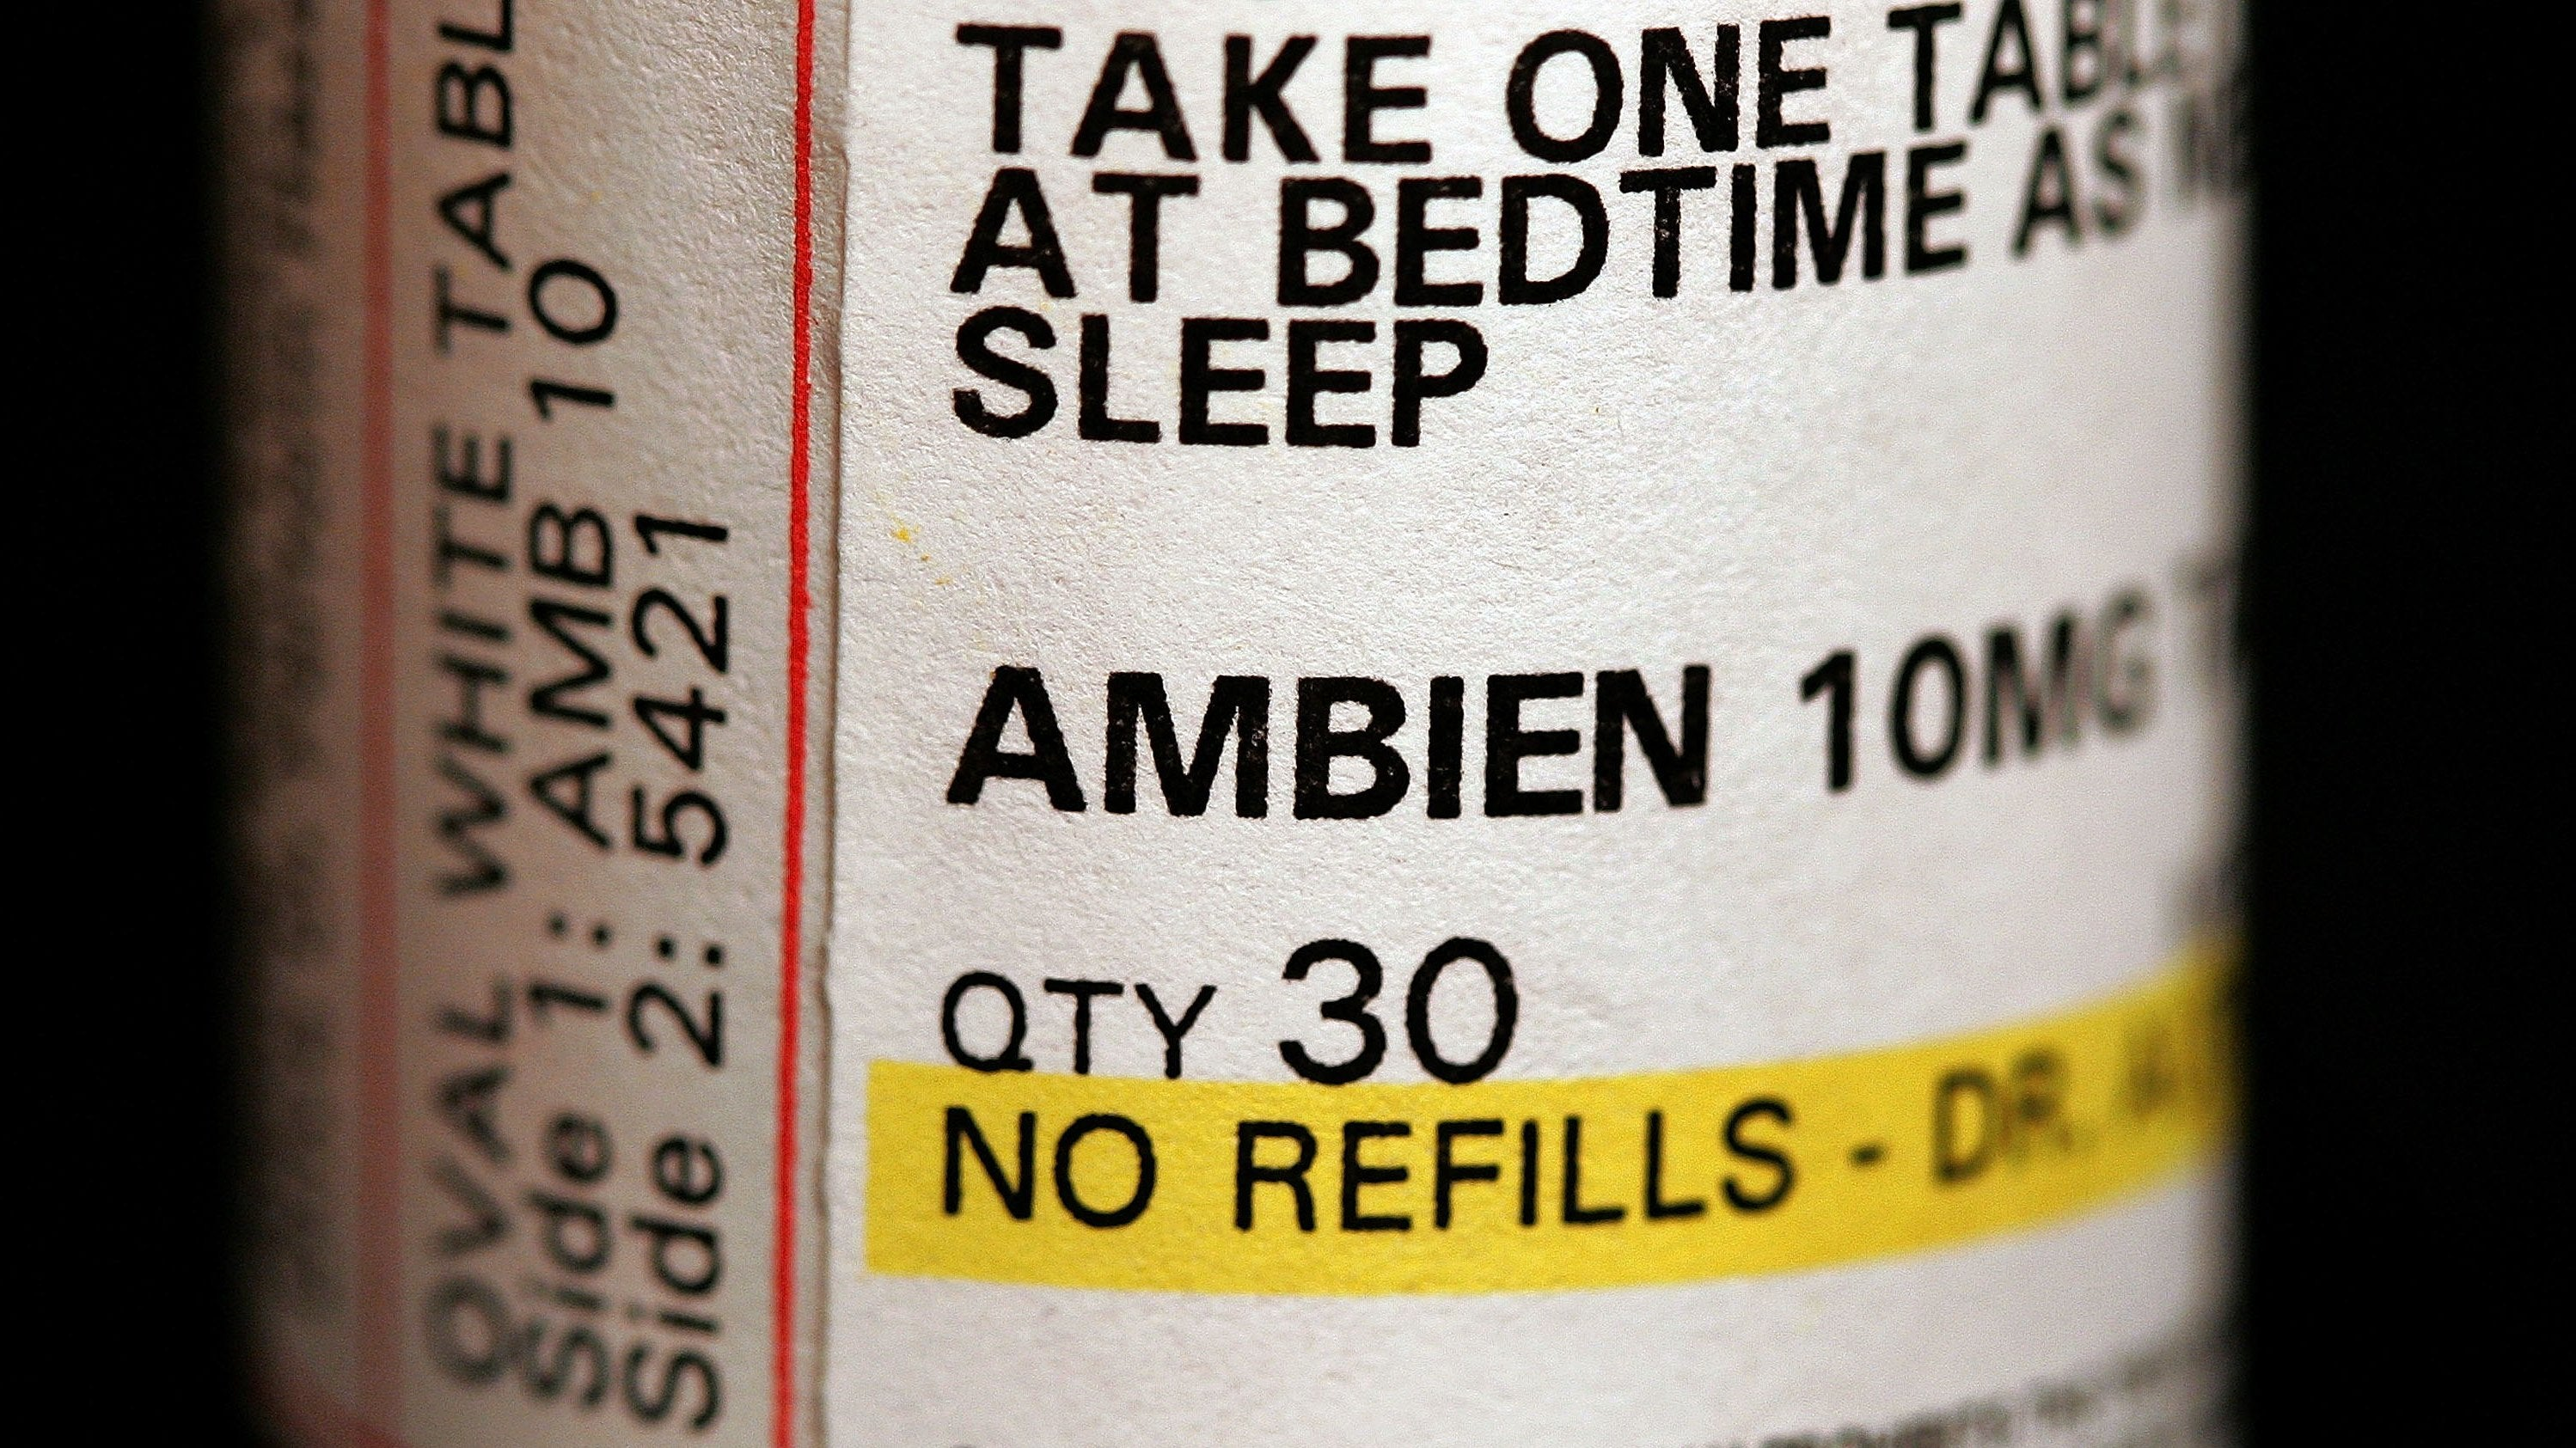 Ambien Has Some Terrible Side Effects, Even If It Doesn't Make You Racist